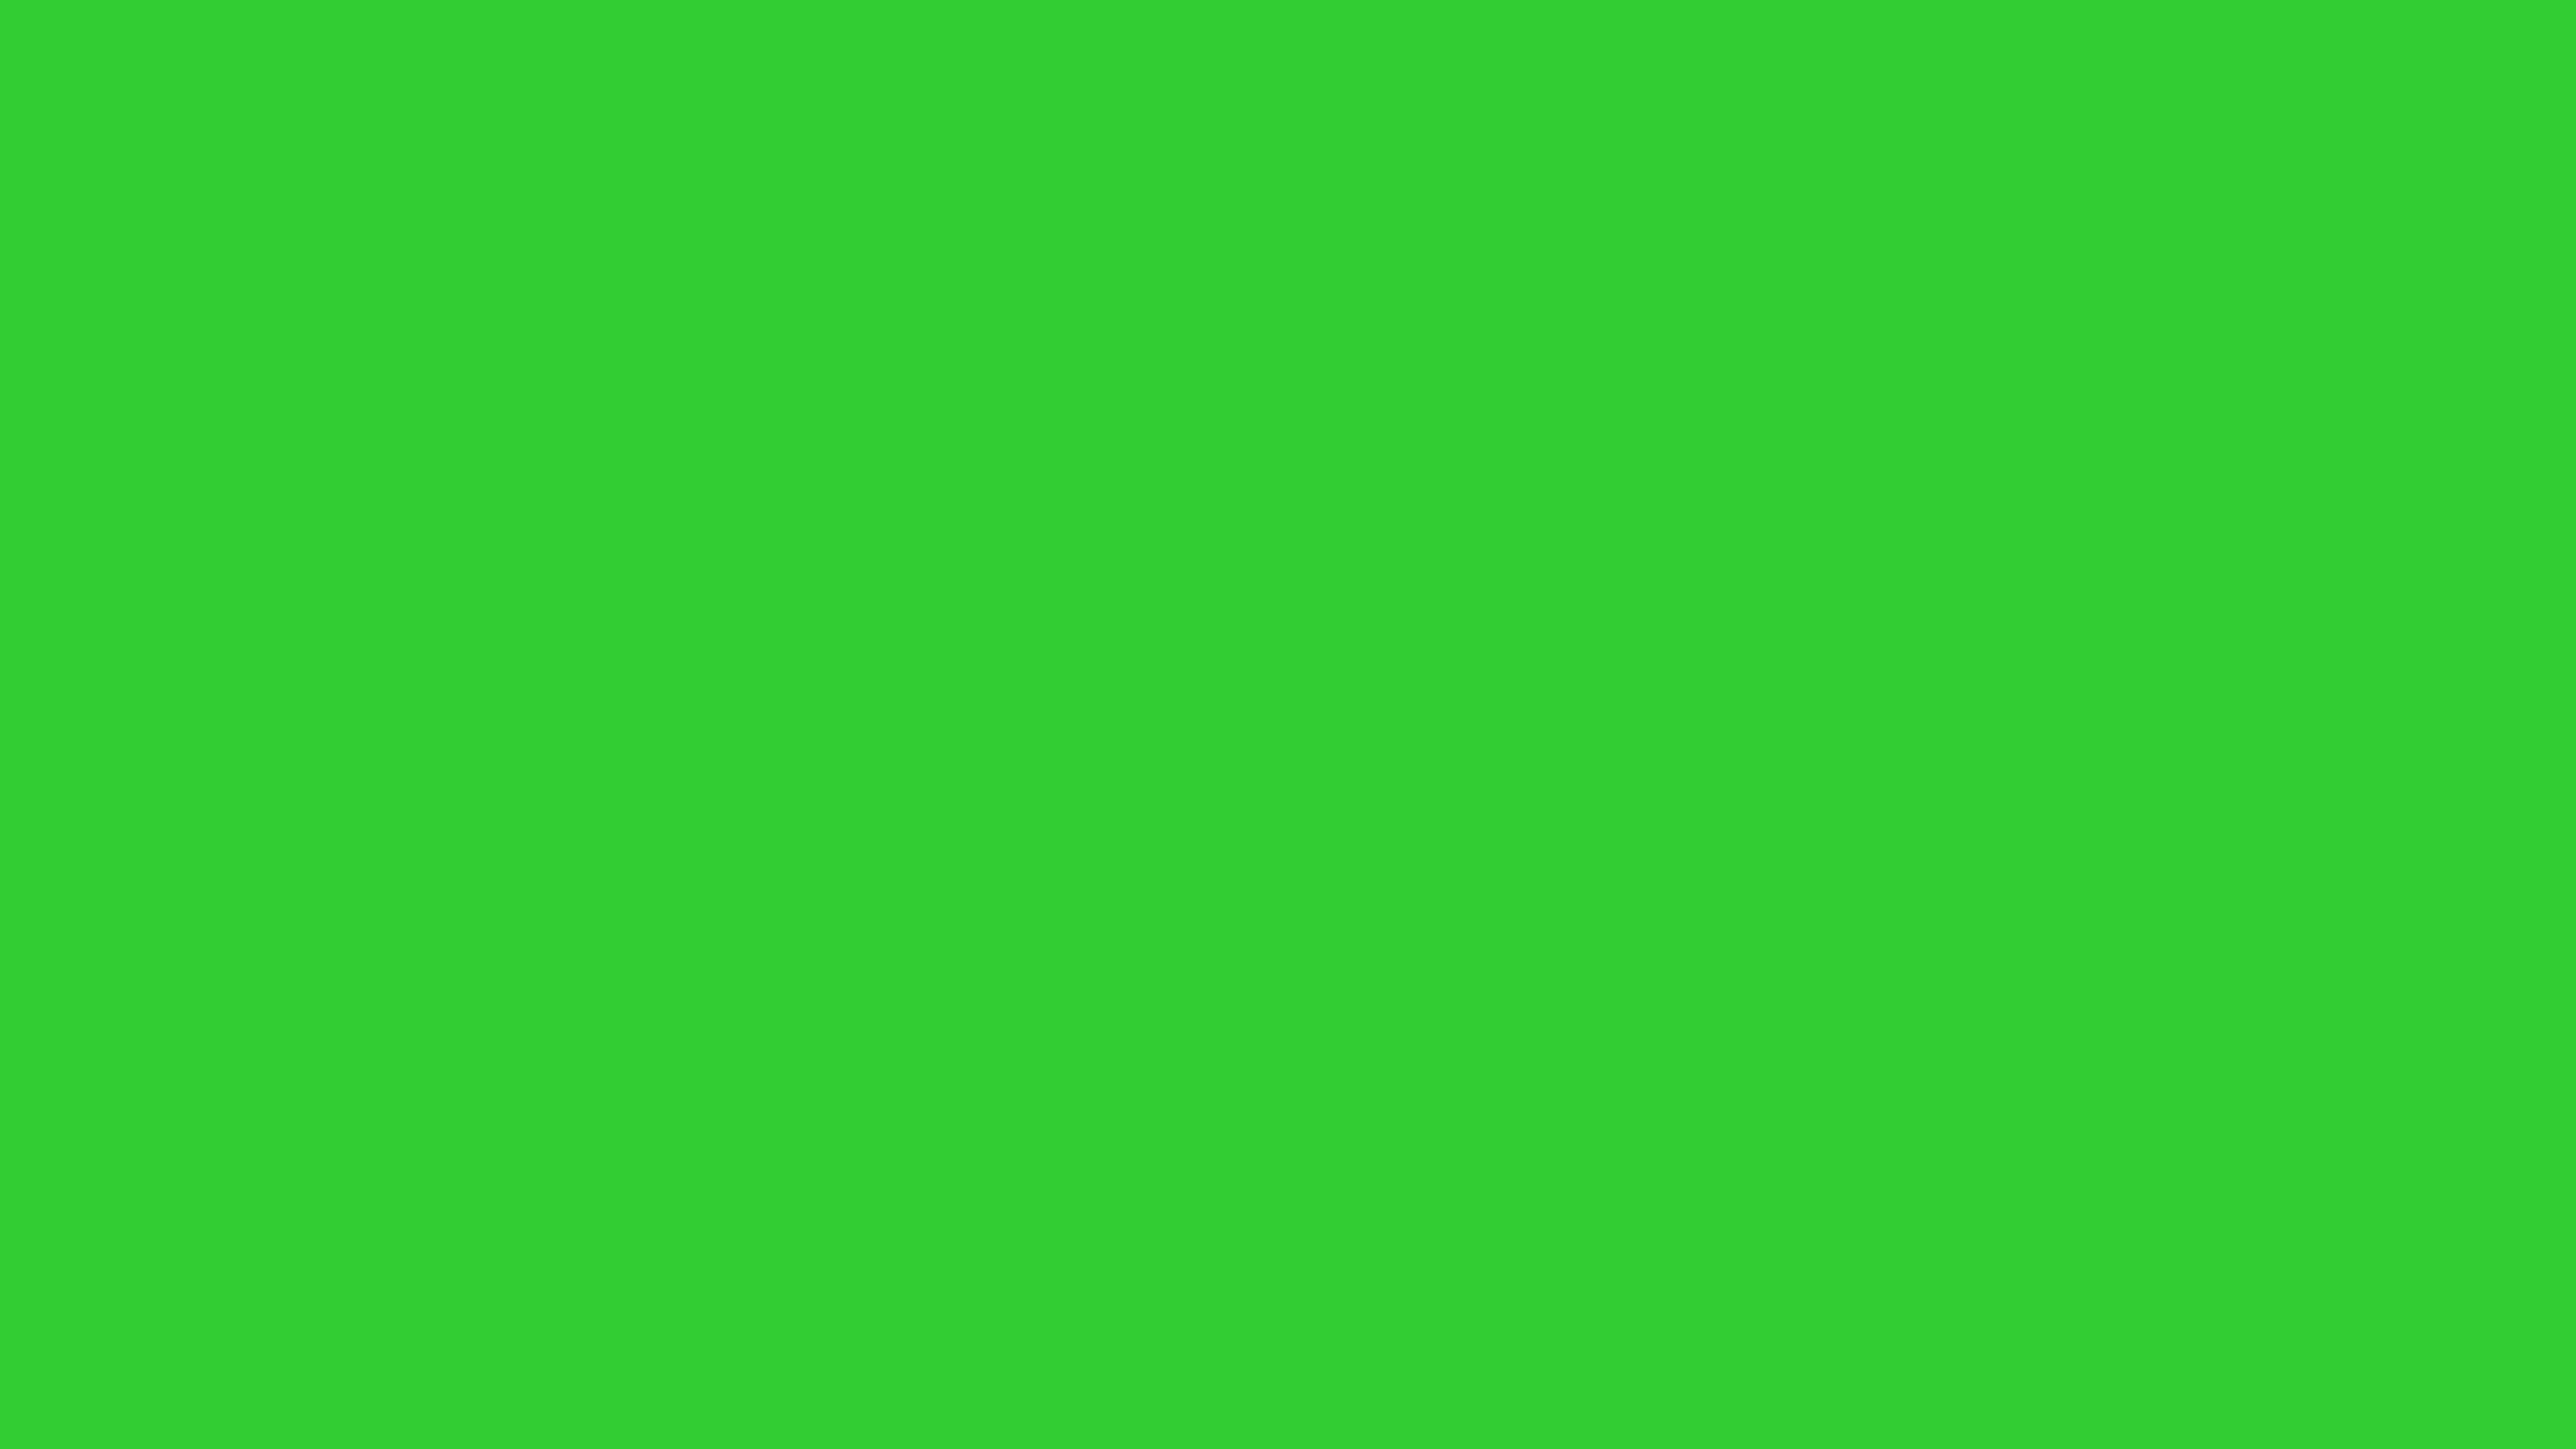 3840x2160 - Solid Green 25